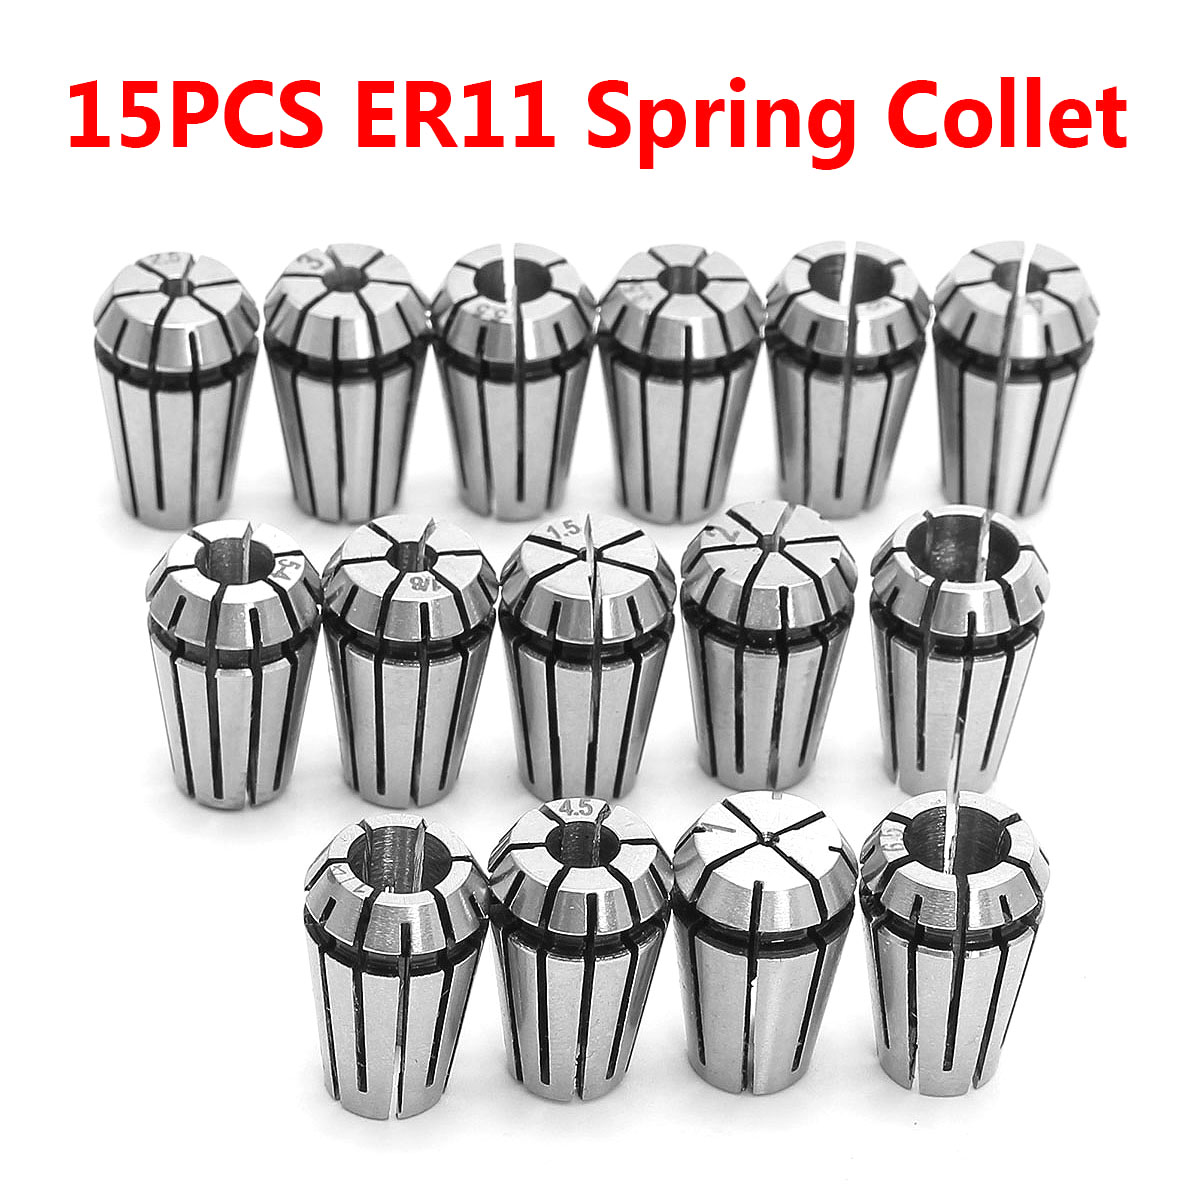 15PCS ER11 Spring Collet Set For CNC Engraving Machine & Milling Lathe Tool Tool Holder Freeshipping